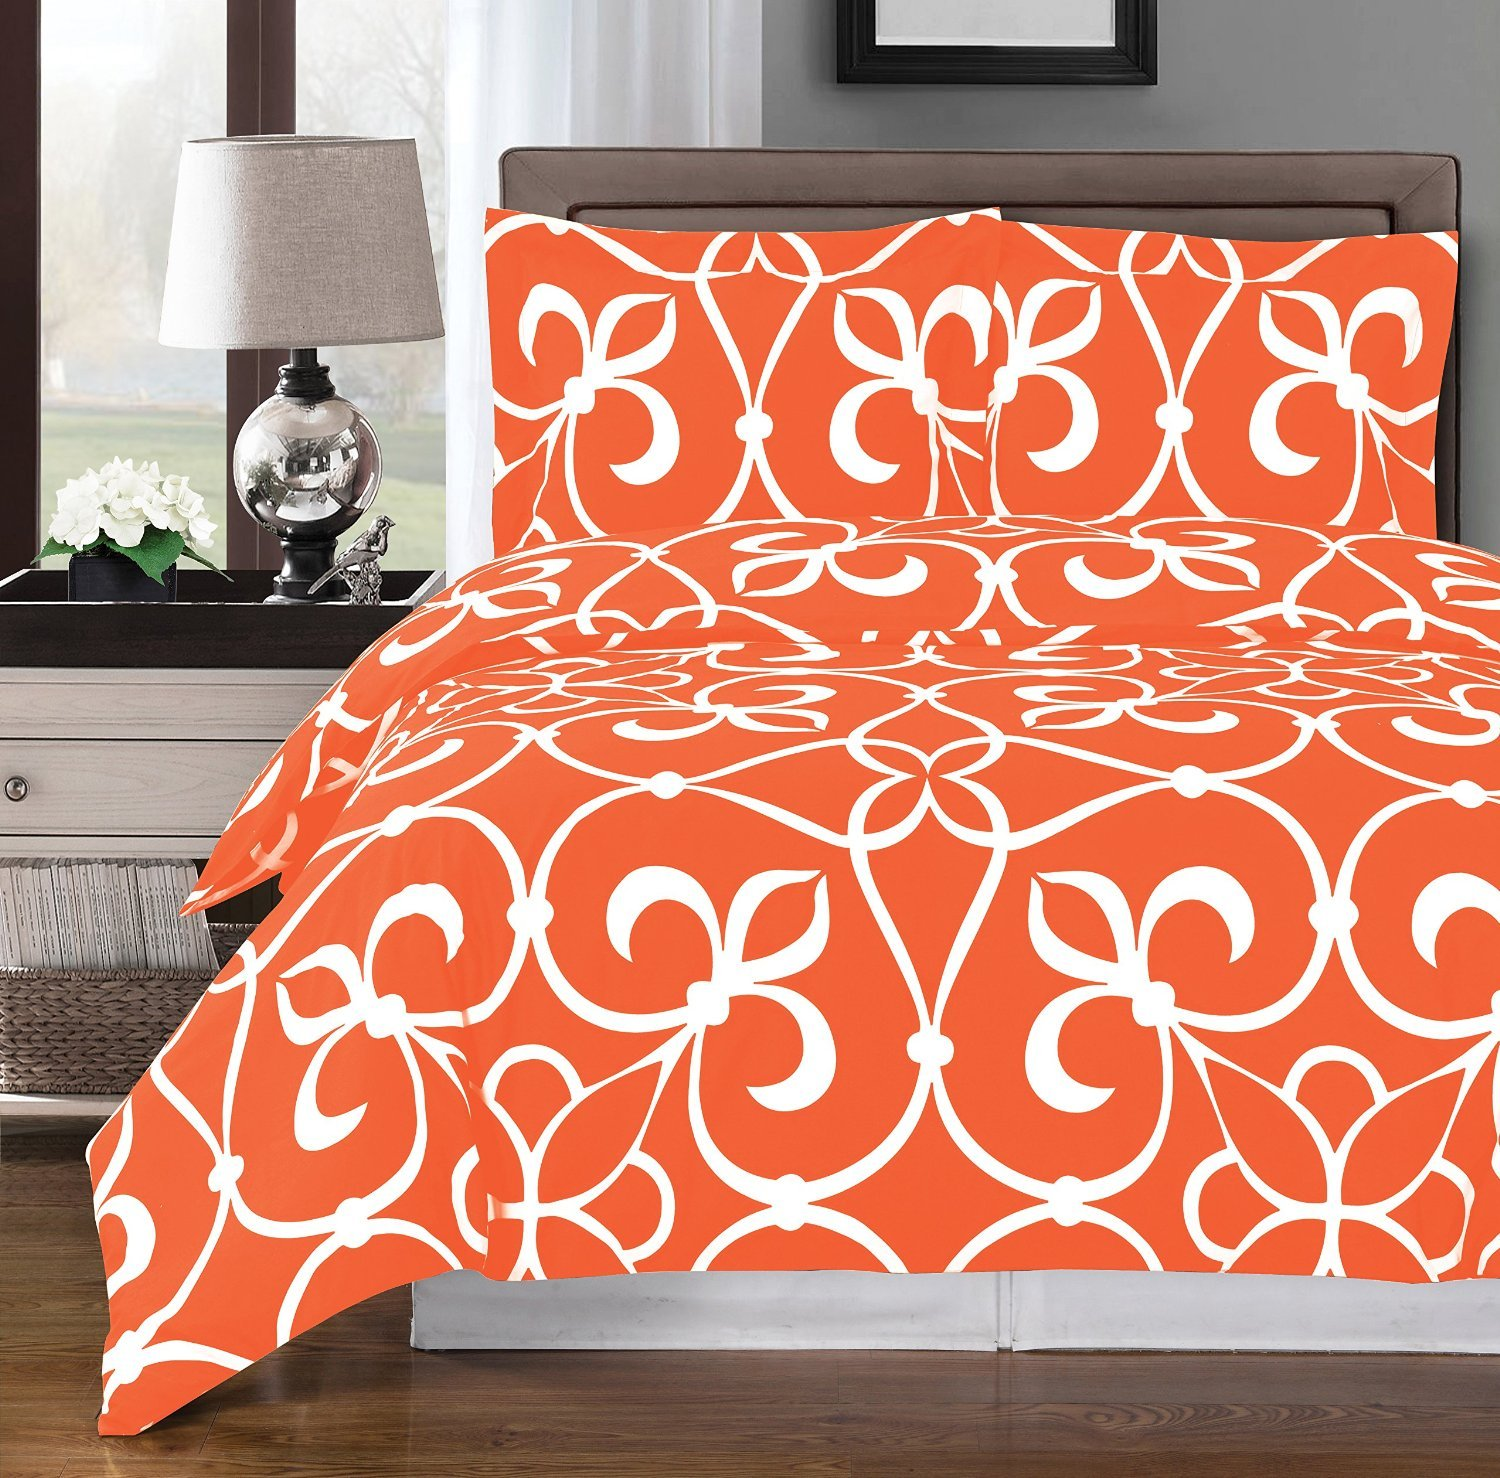 Tangerine and White Victoria 3-piece Full / Queen Duvet Cover Set